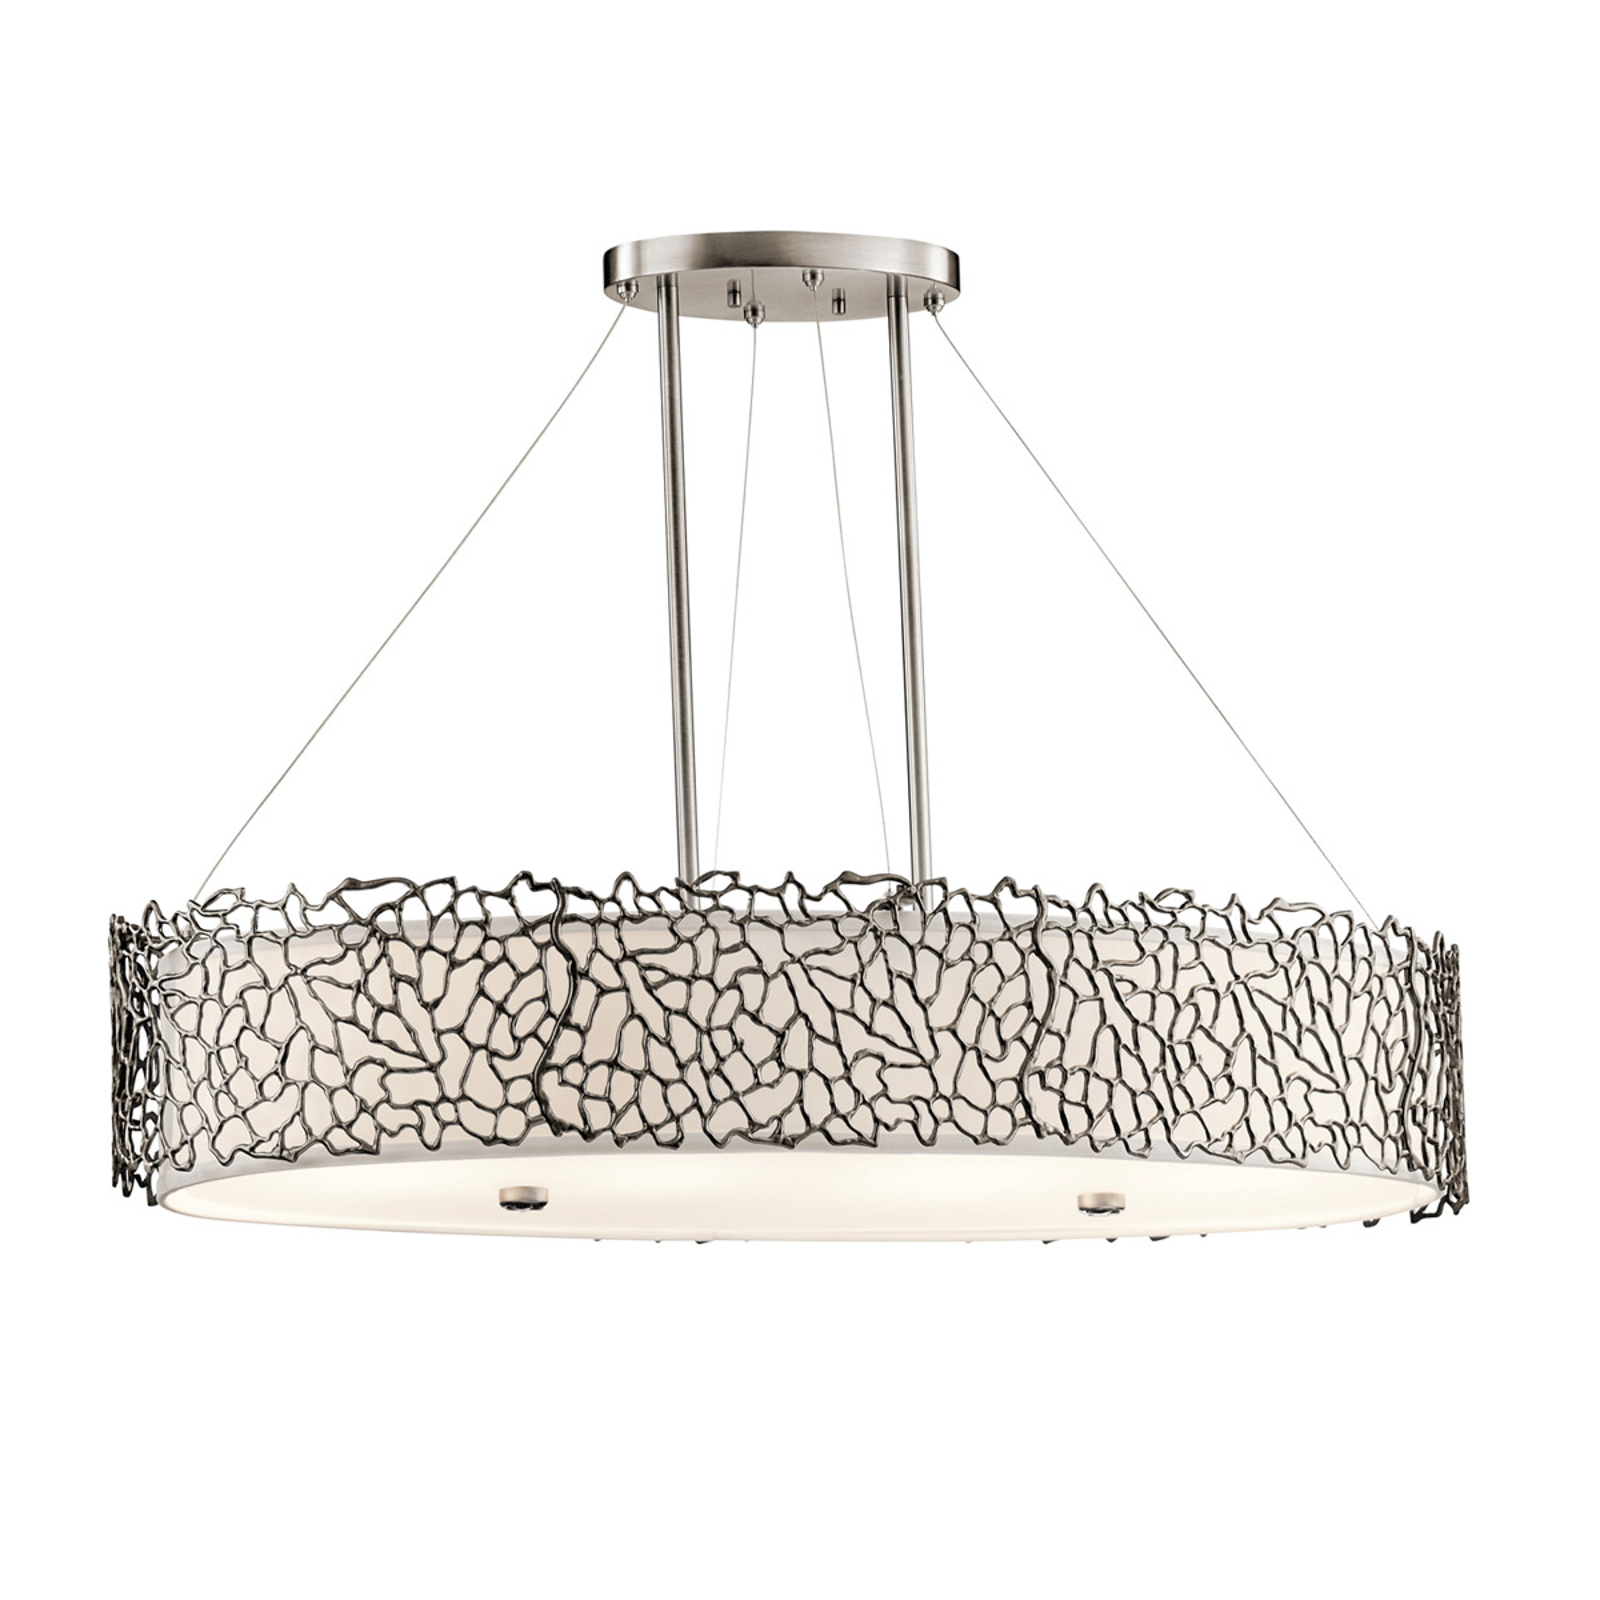 Ovale hanglamp Silver Coral